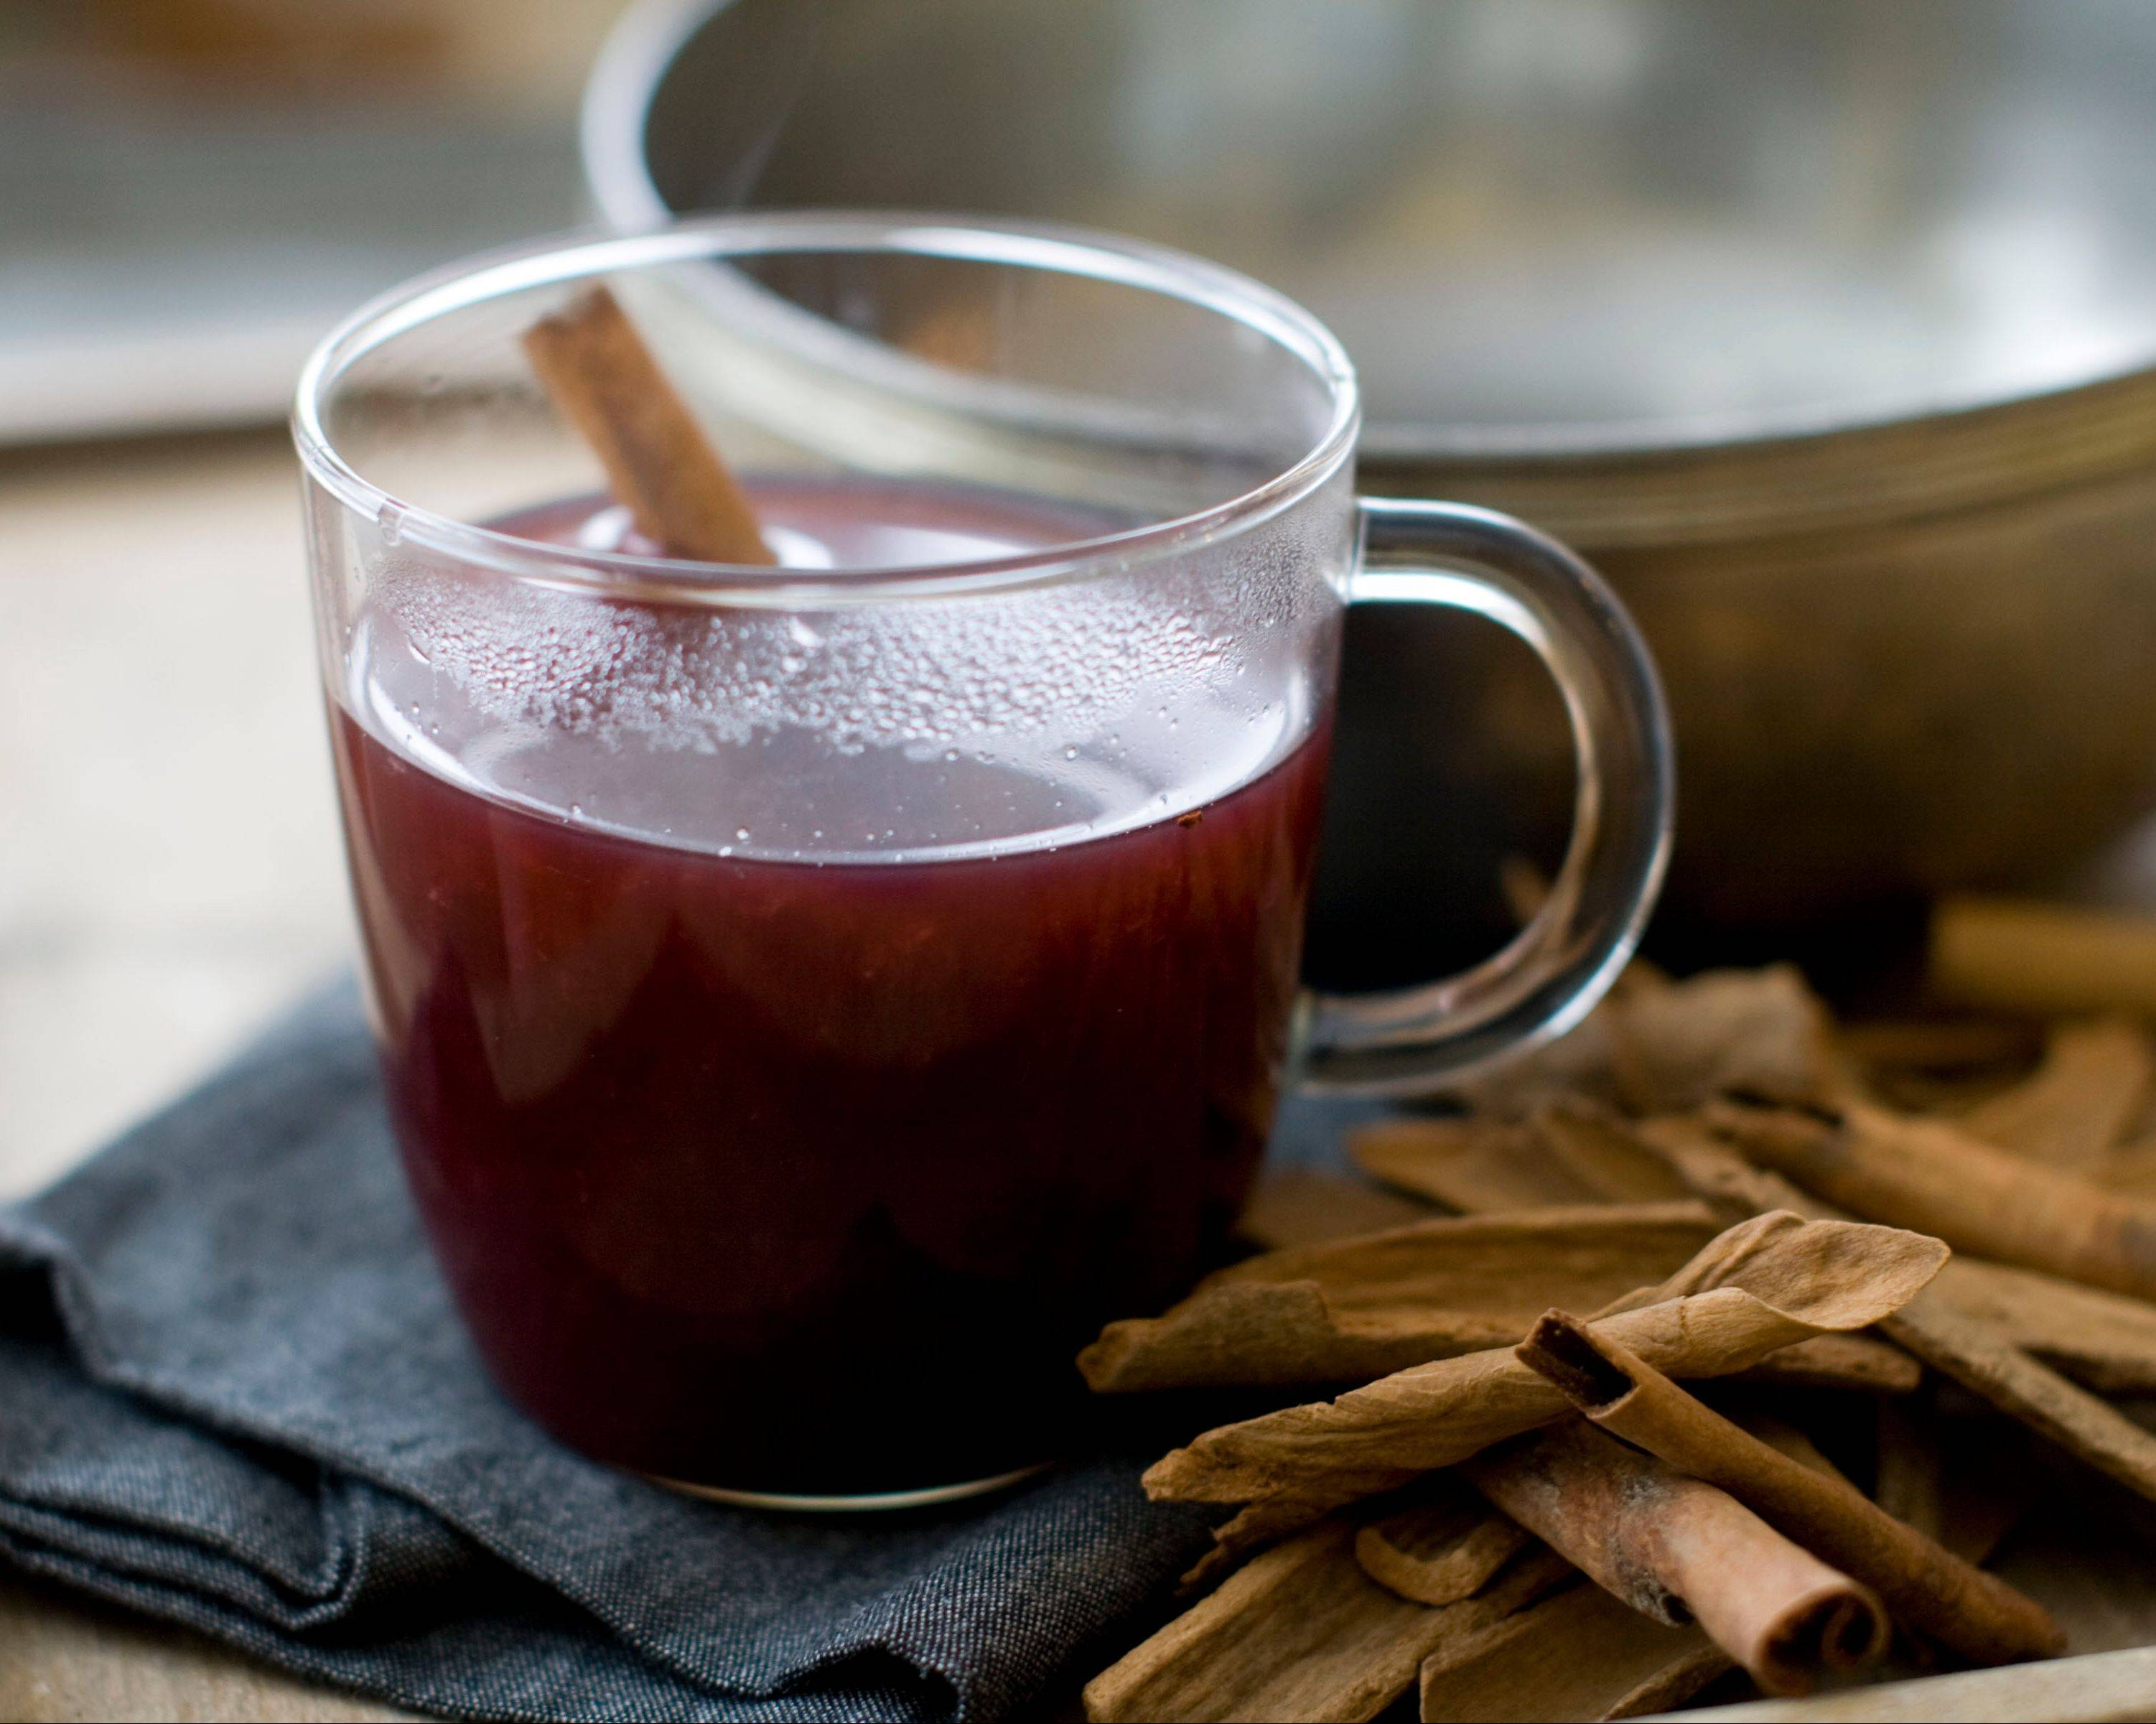 Sip sbiten, a warm Russian mulled honey drink, while you watch American athletes compete in the Sochi games.